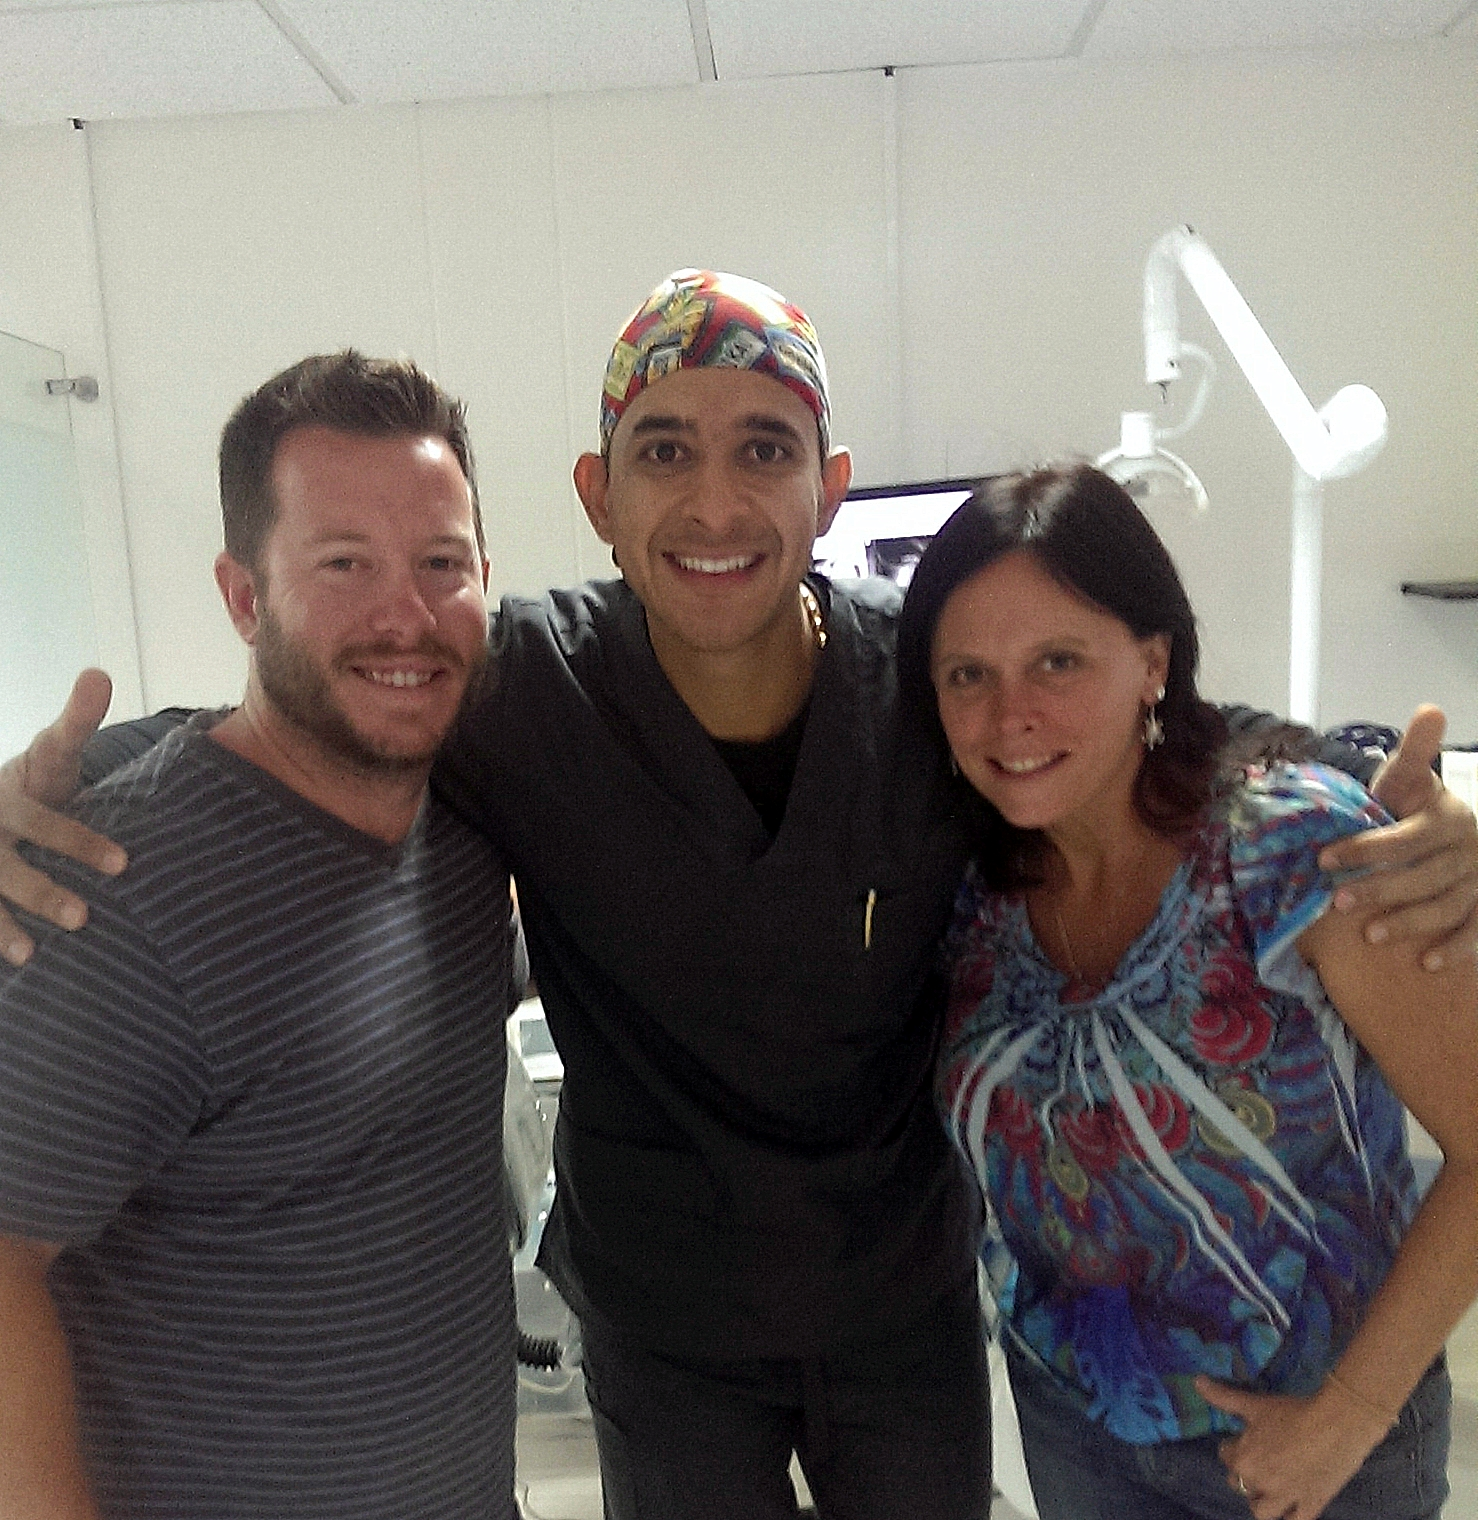 All smiles after Dr Javier Jimenez worked his magic.